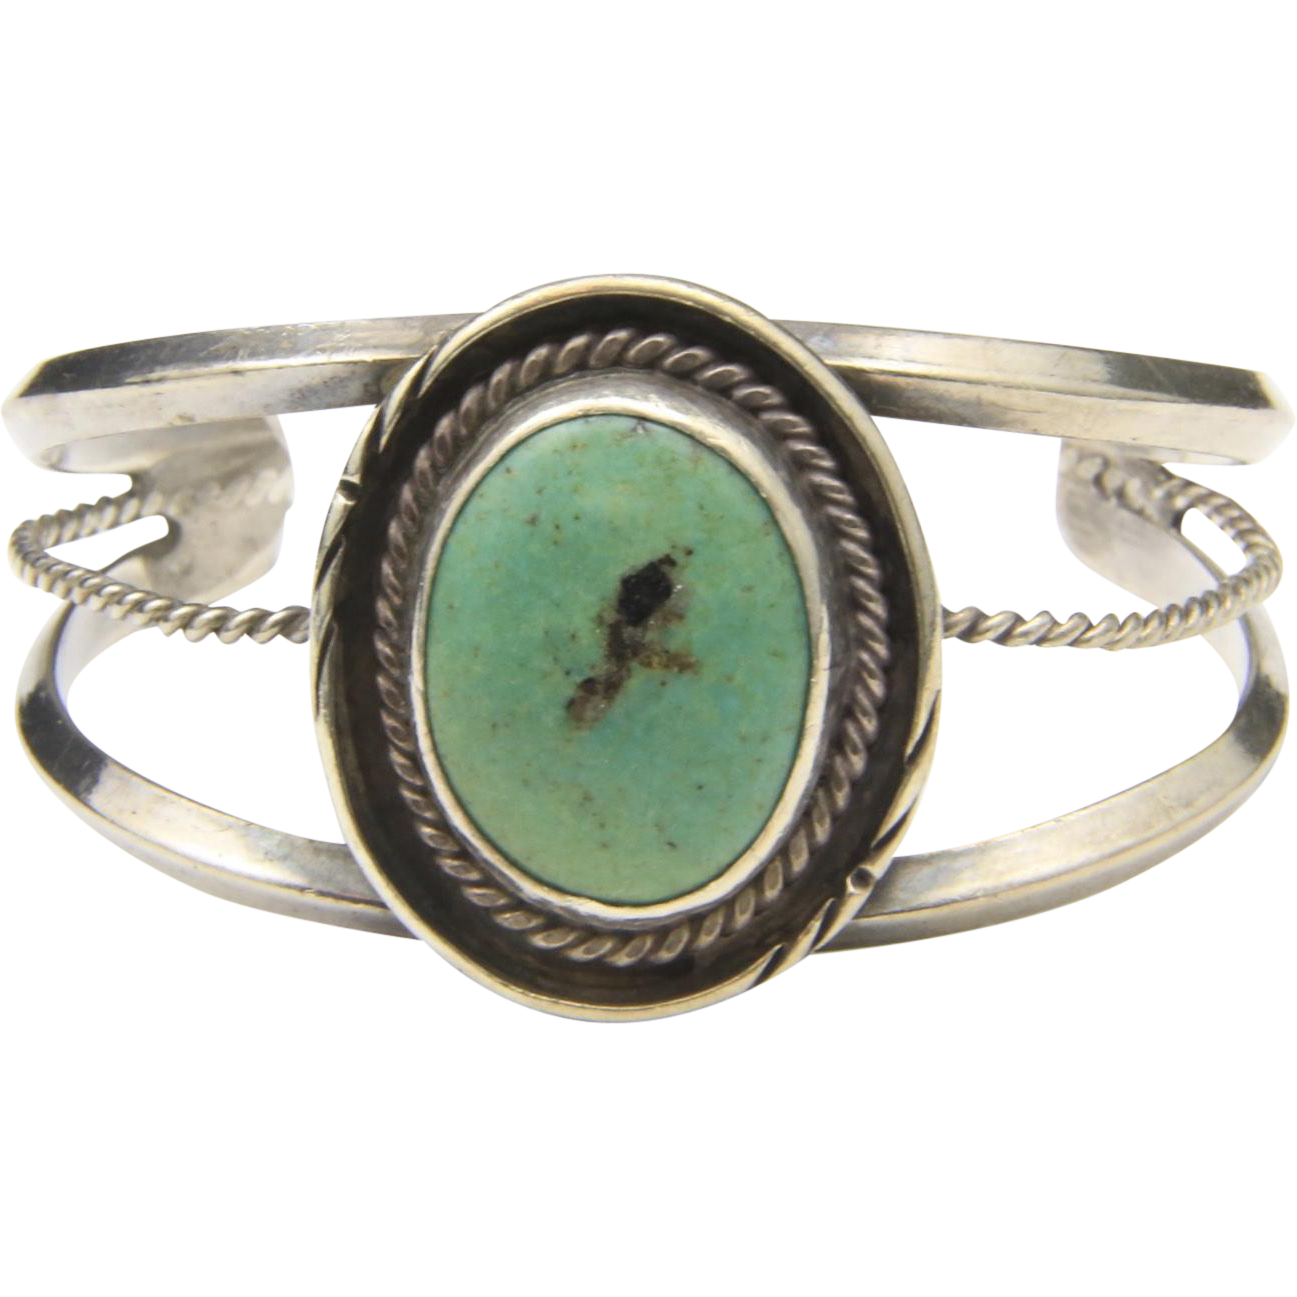 Vintage Sterling SIlver & Green Turquoise Southwestern Style Cuff Bracelet